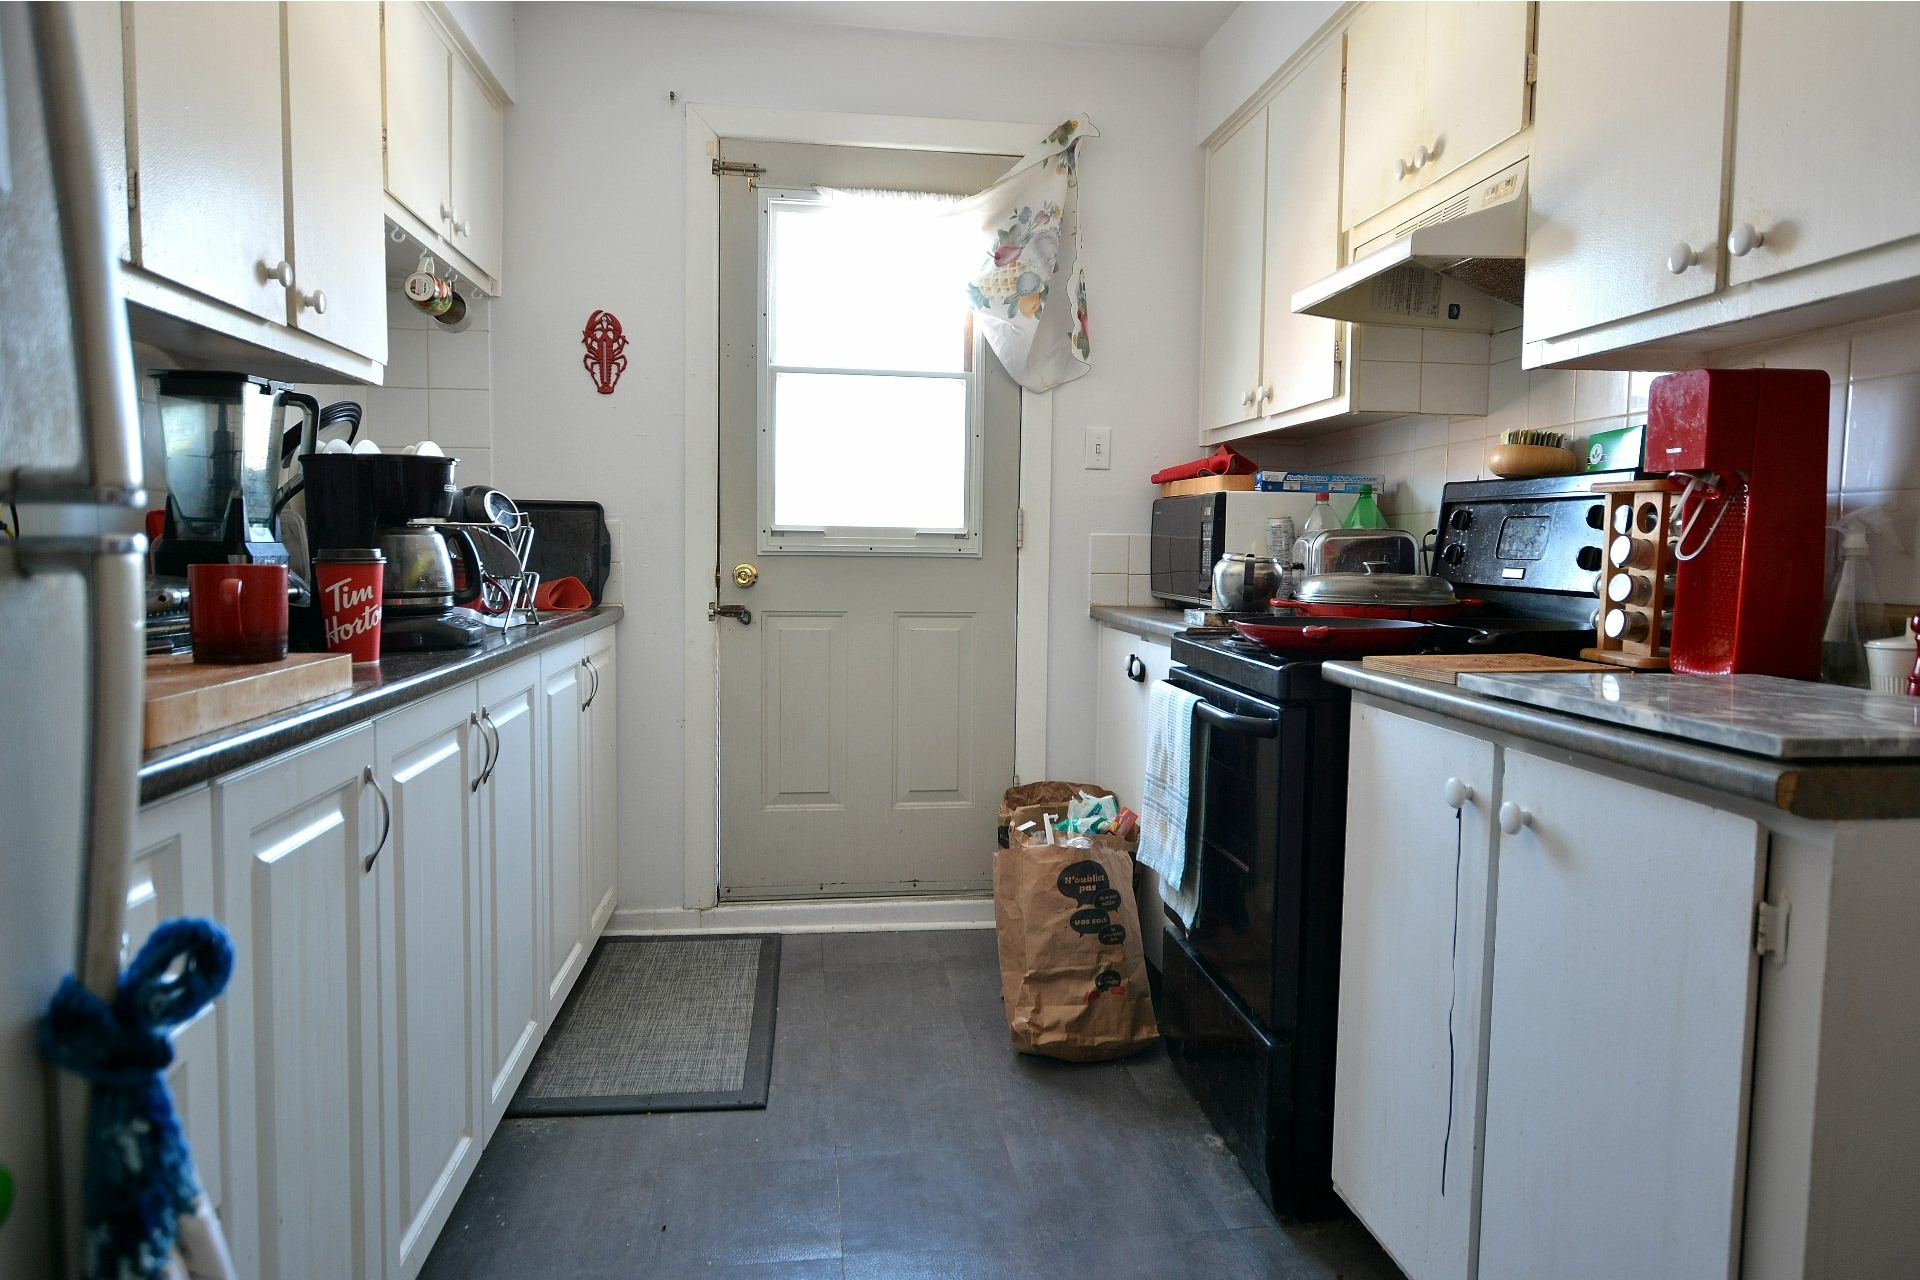 image 24 - Income property For sale Pierrefonds-Roxboro Montréal  - 4 rooms